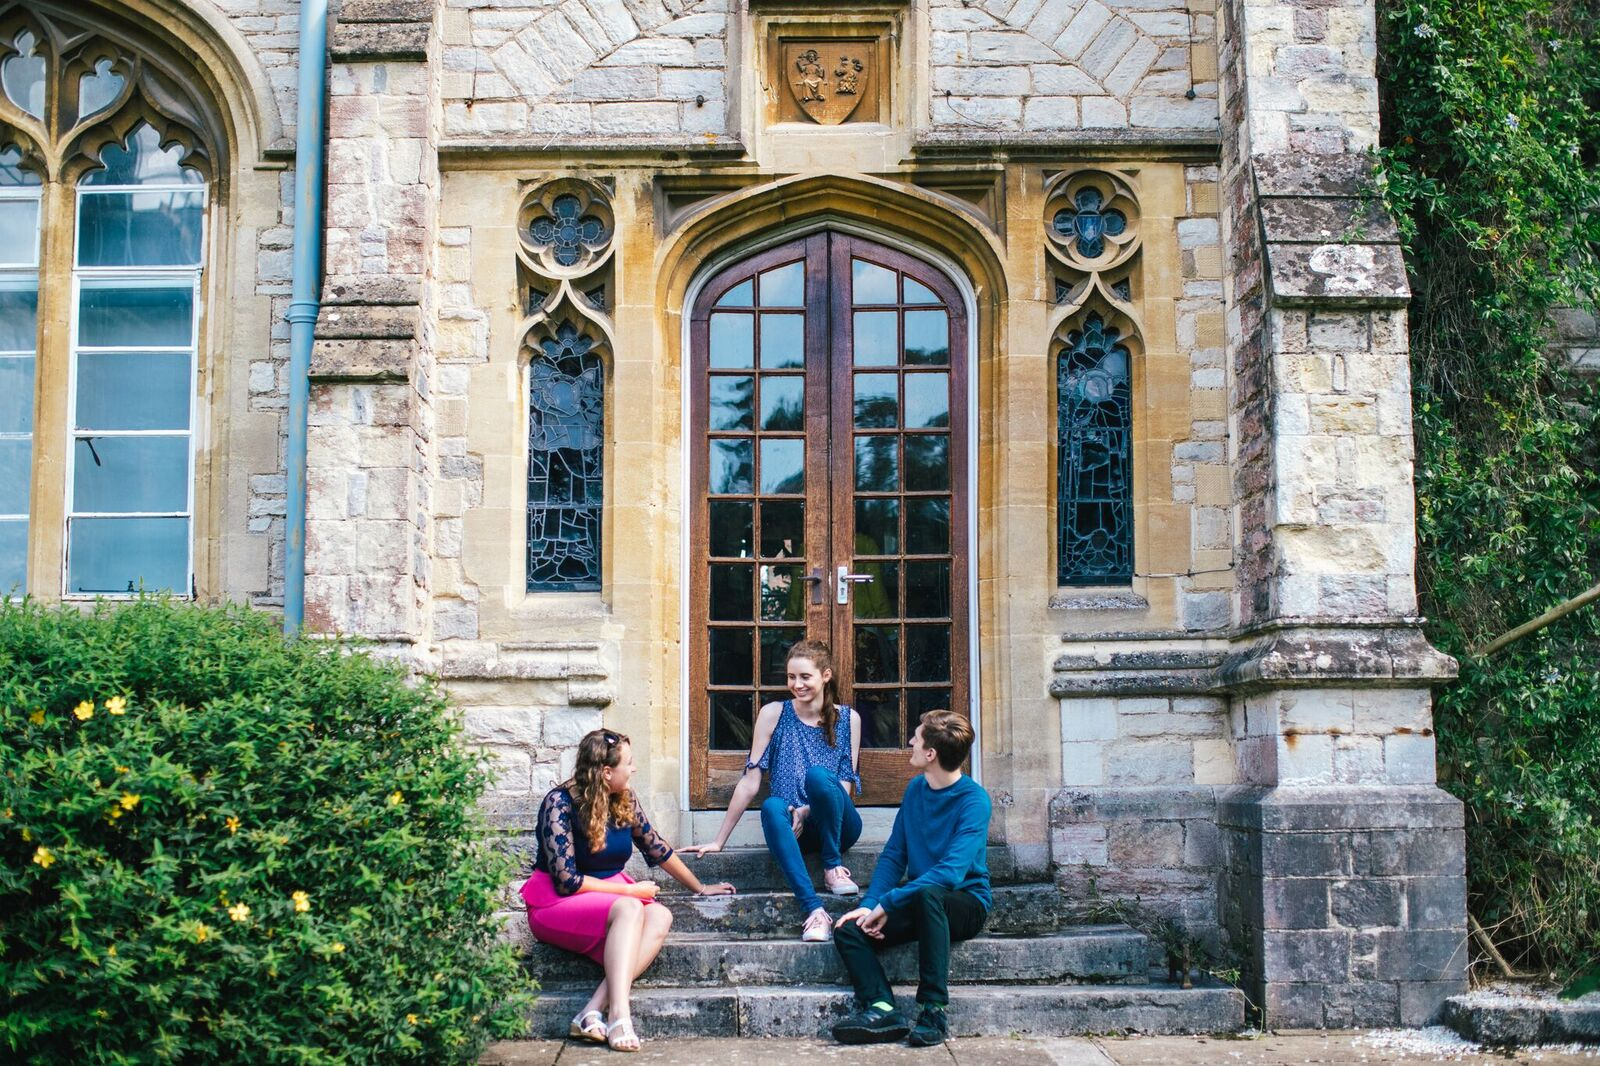 Students in Cloisters